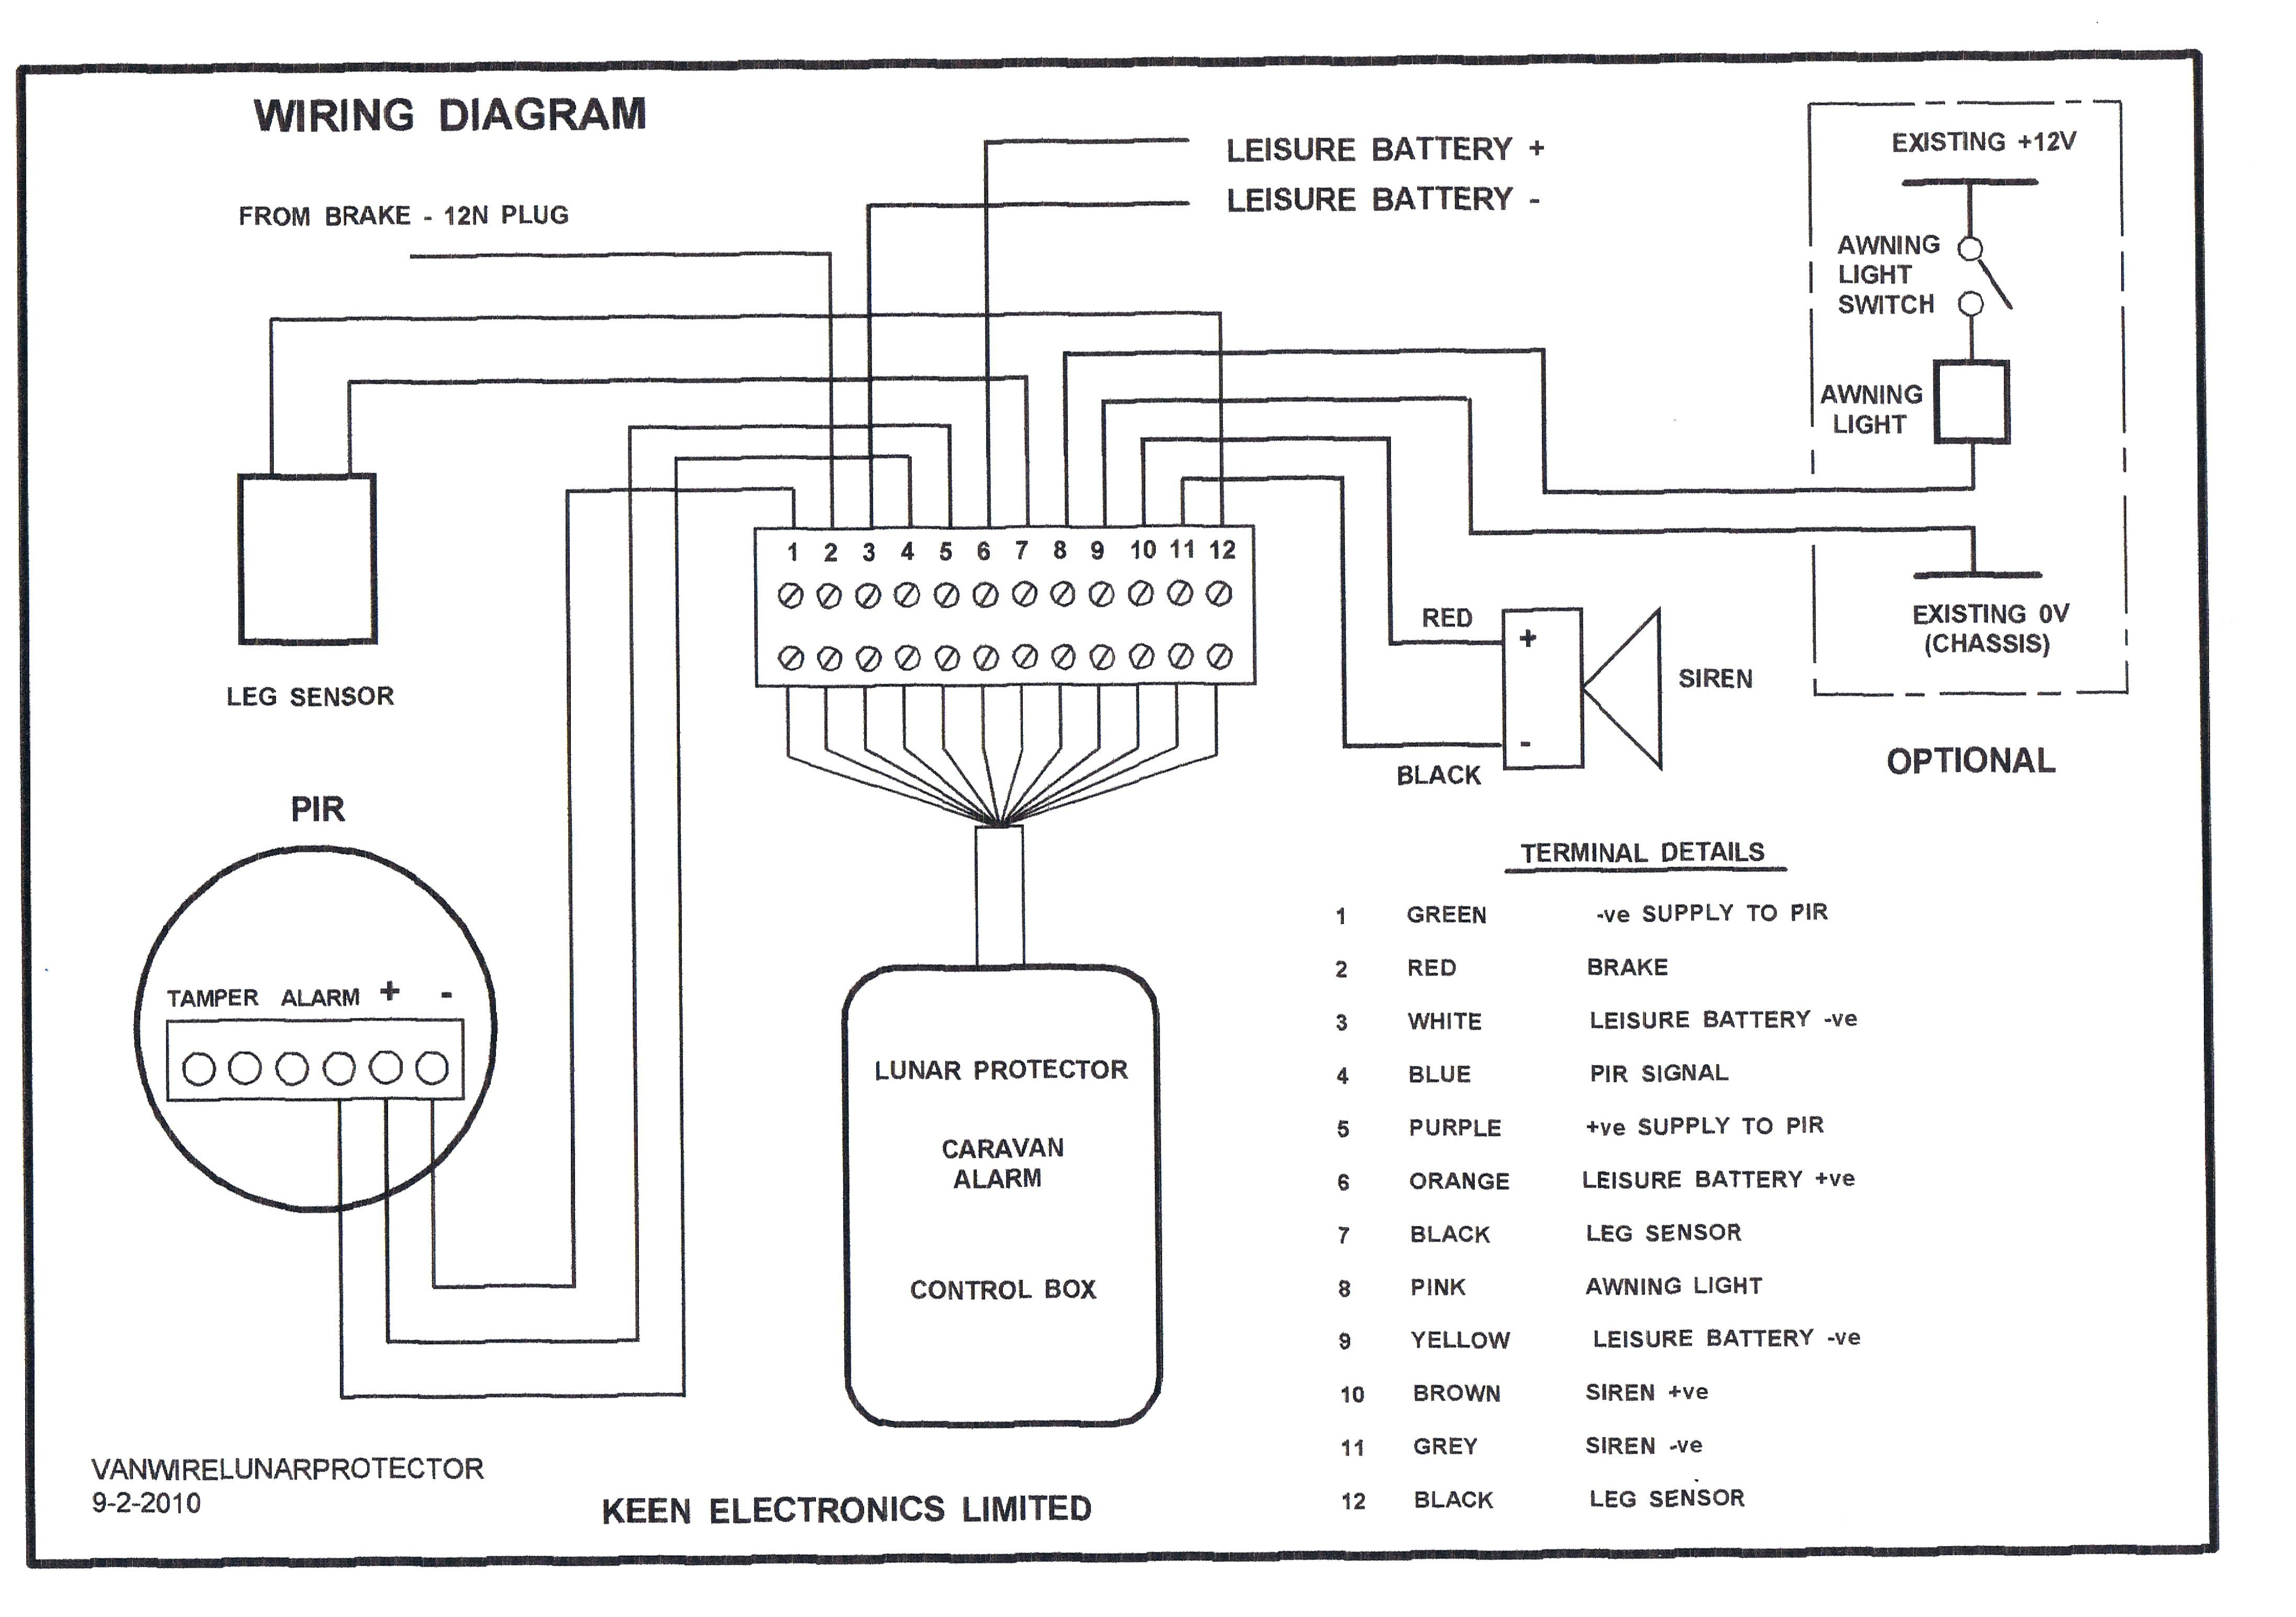 Home Security System Wiring Diagram Bulldog Vehicle Diagrams Mercial Fire Alarm And Addressable Smoke Of